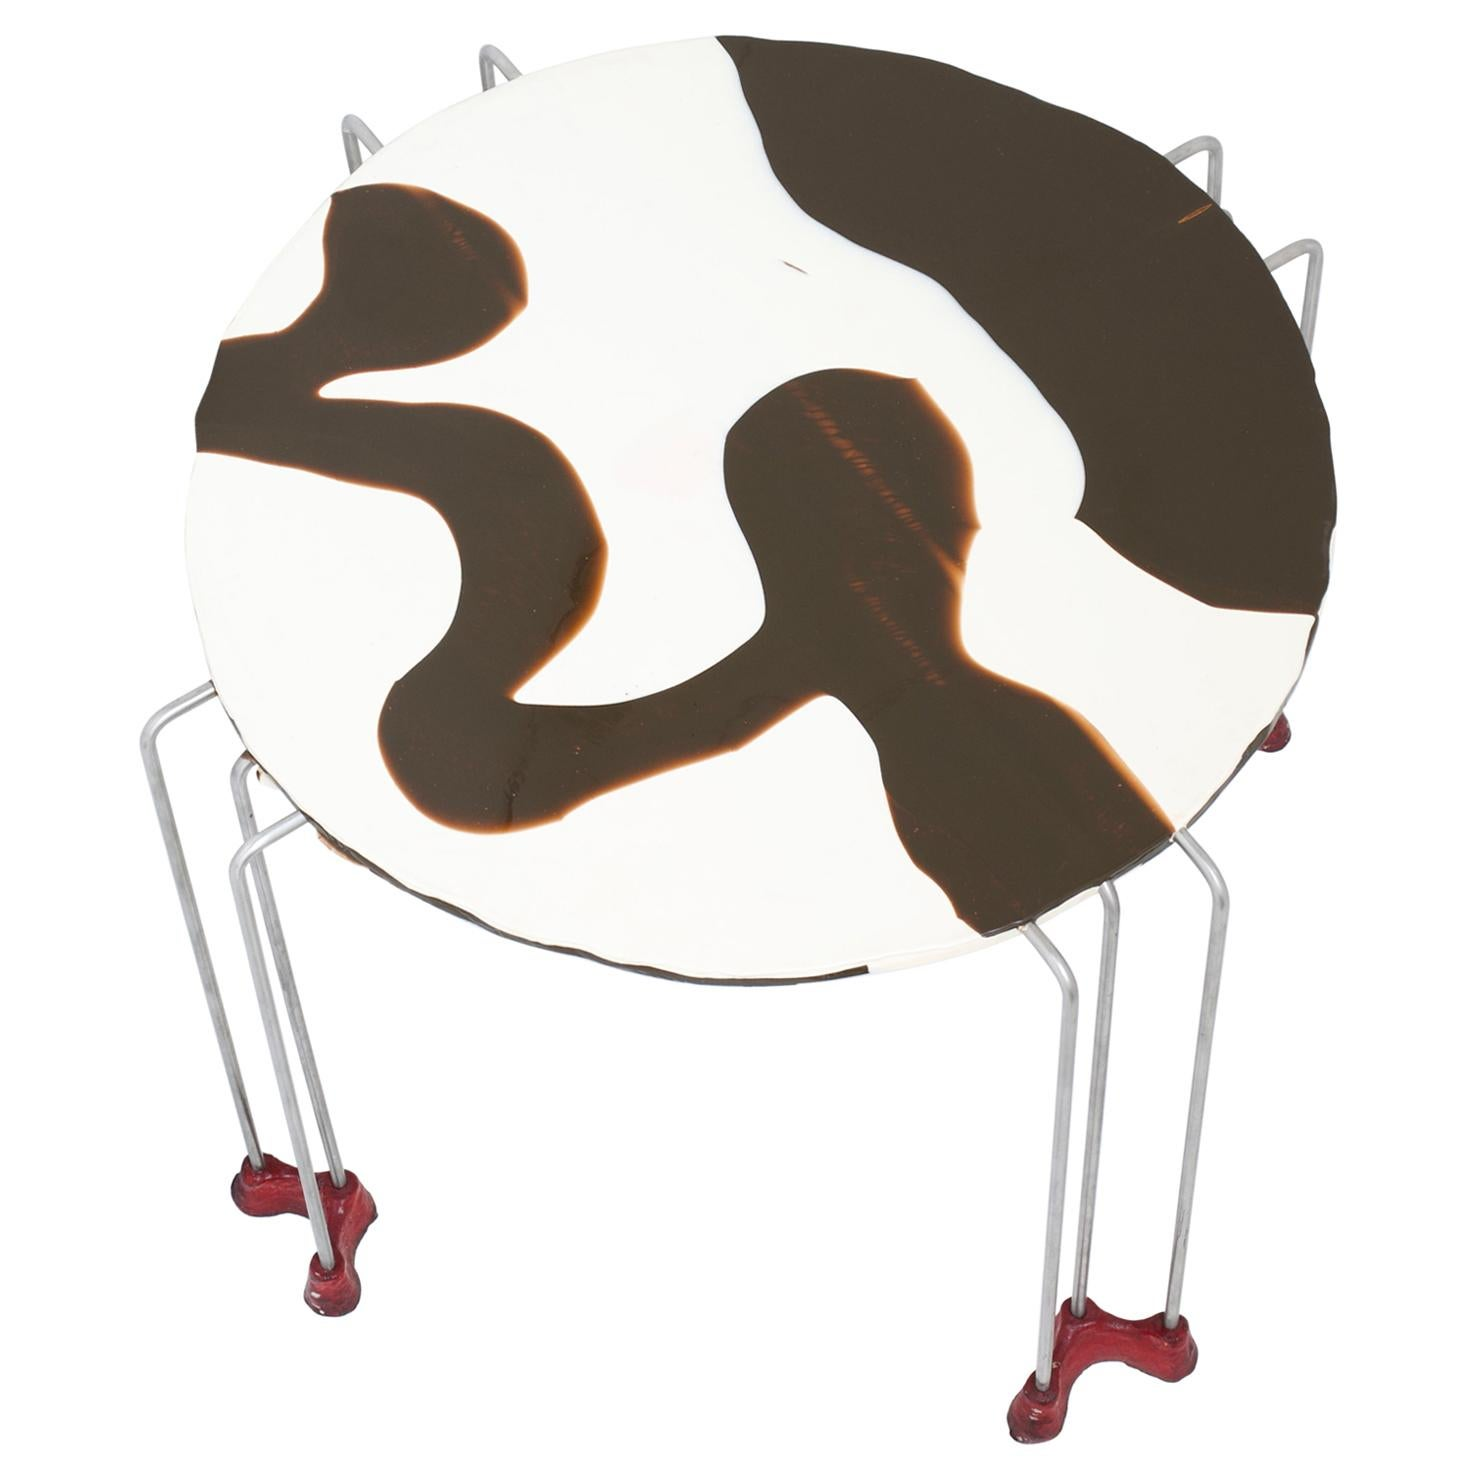 Triple Play Dining Table by Gaetano Pesce for Fish Design, Nr. 1/2016